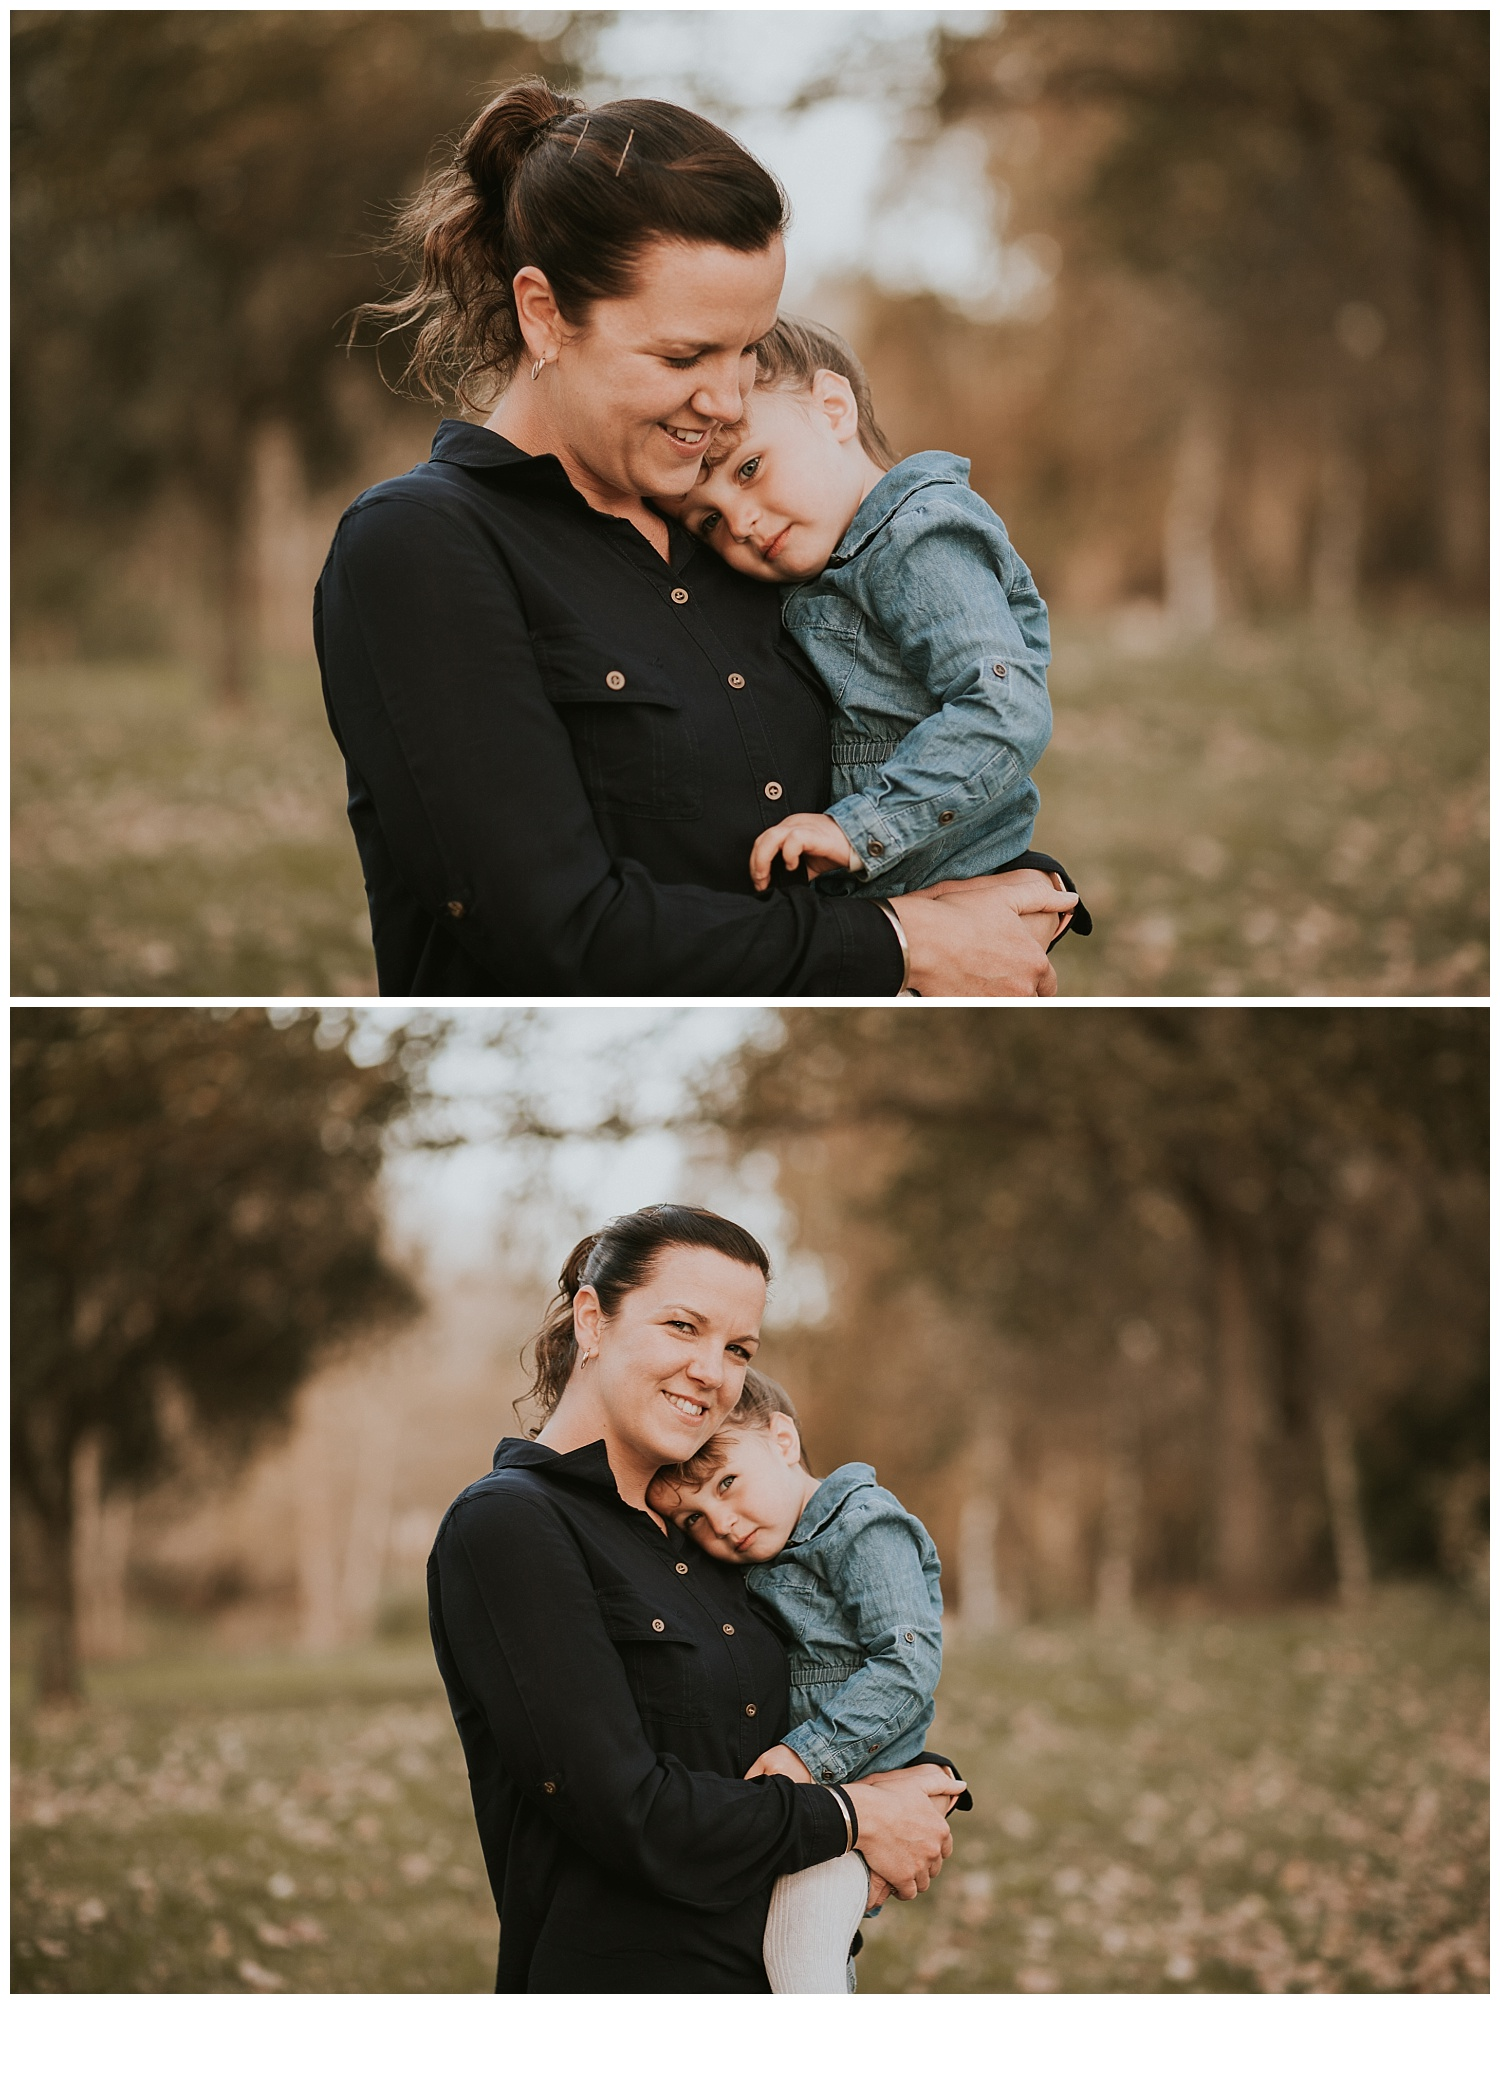 mother and daughter hugging in photoshoot